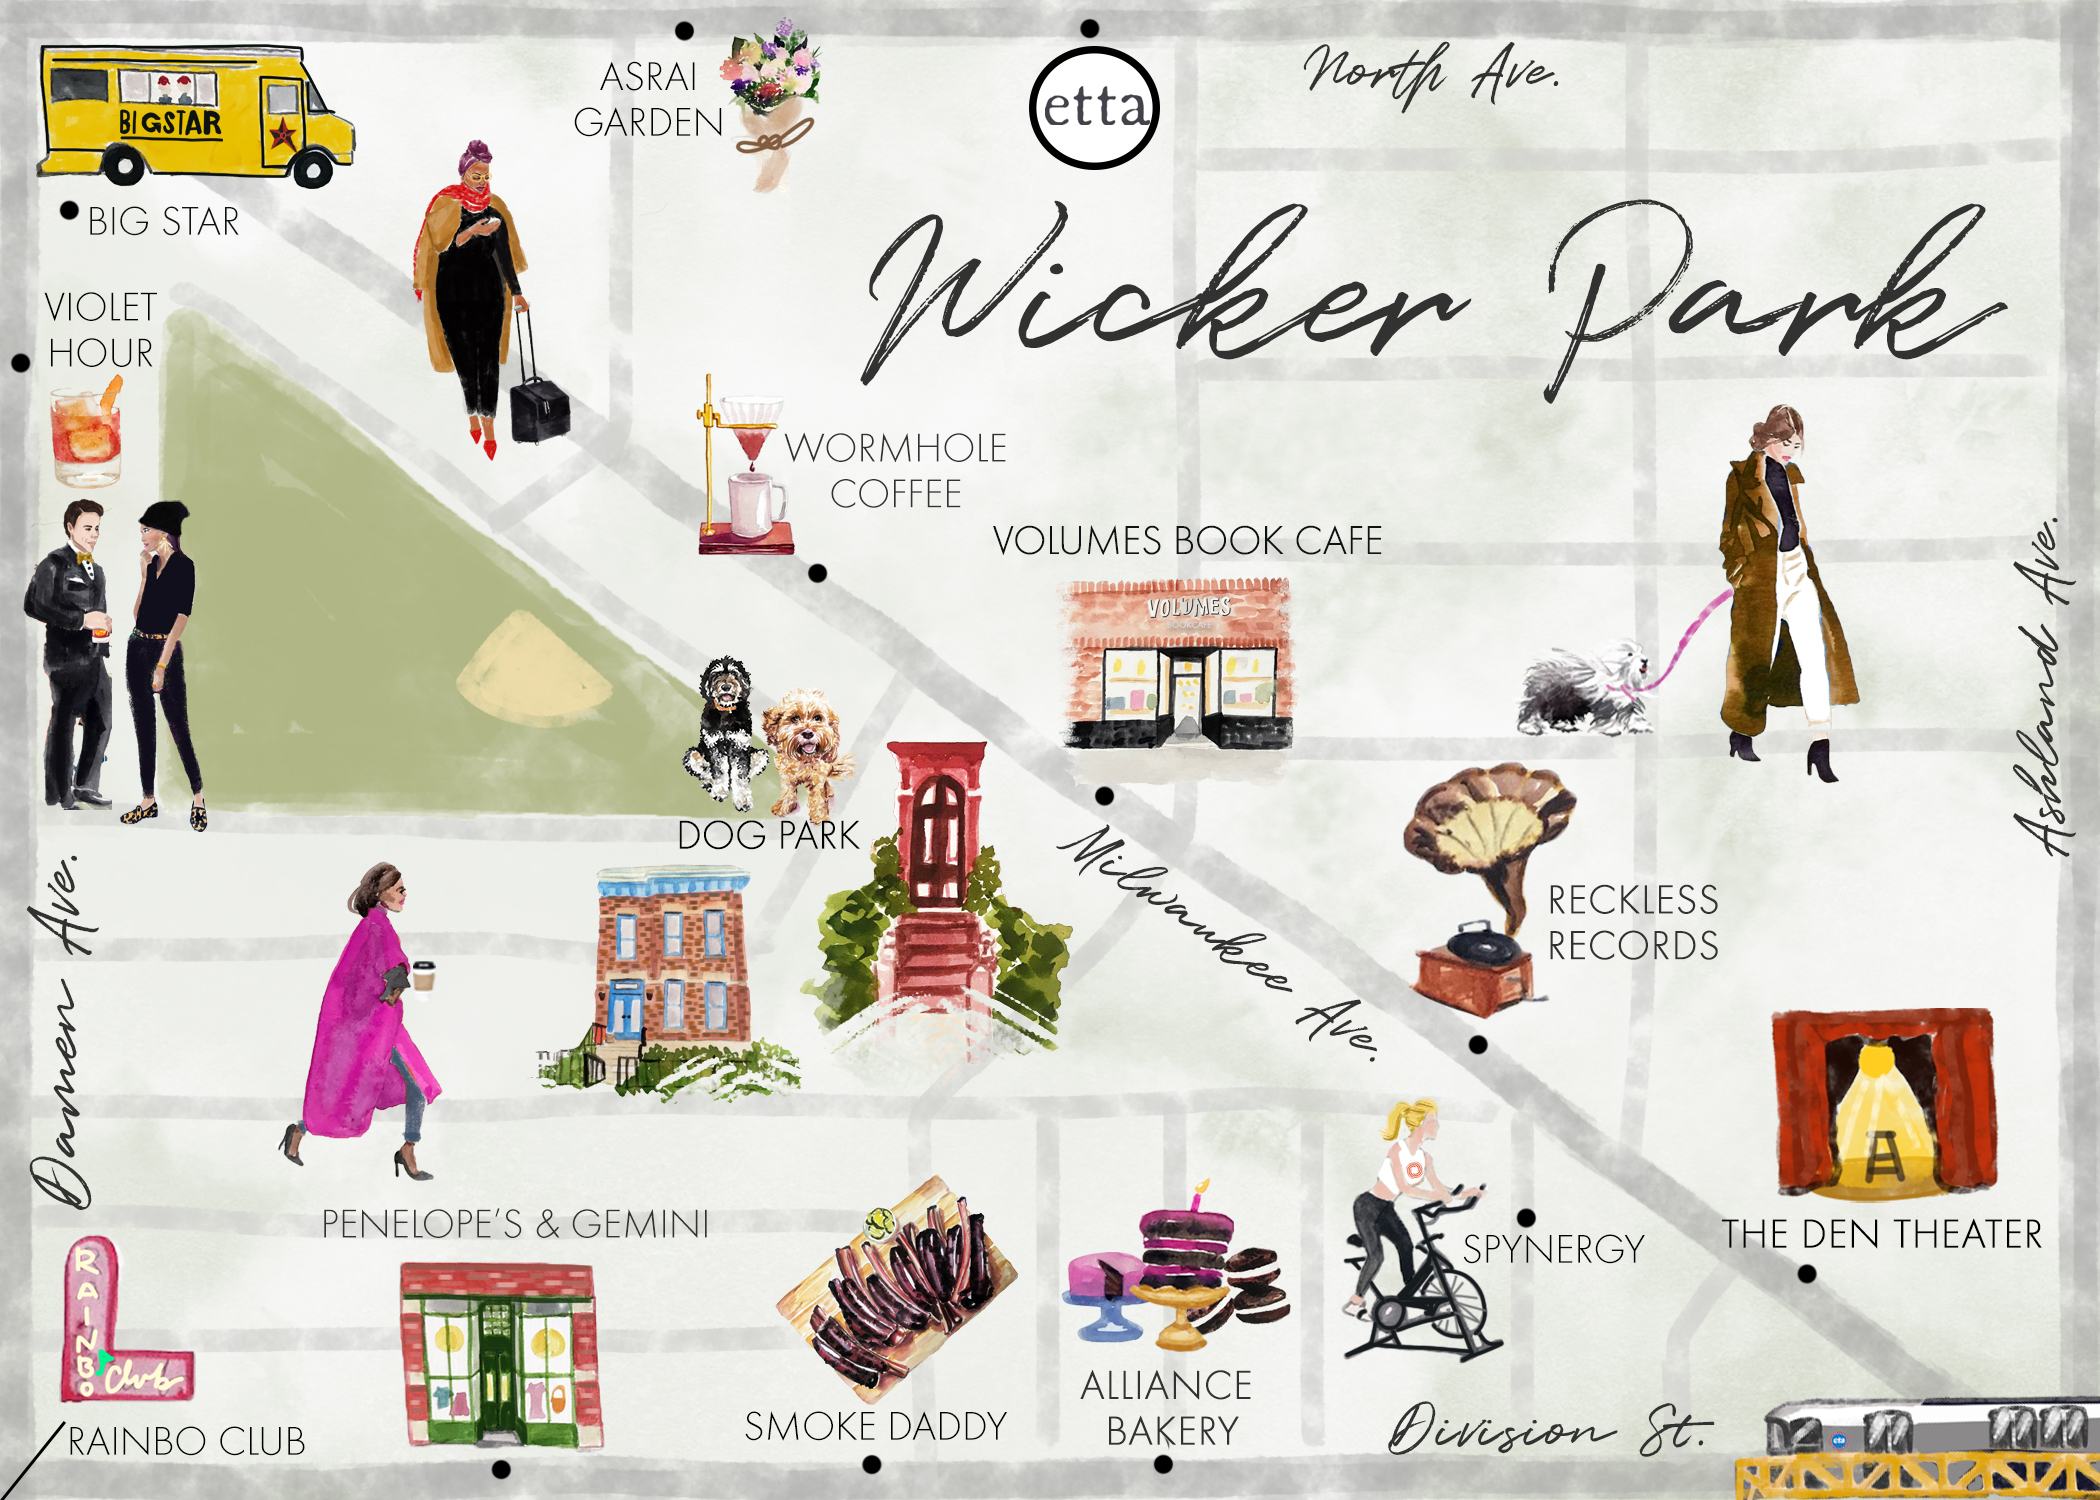 Explore Wicker Park